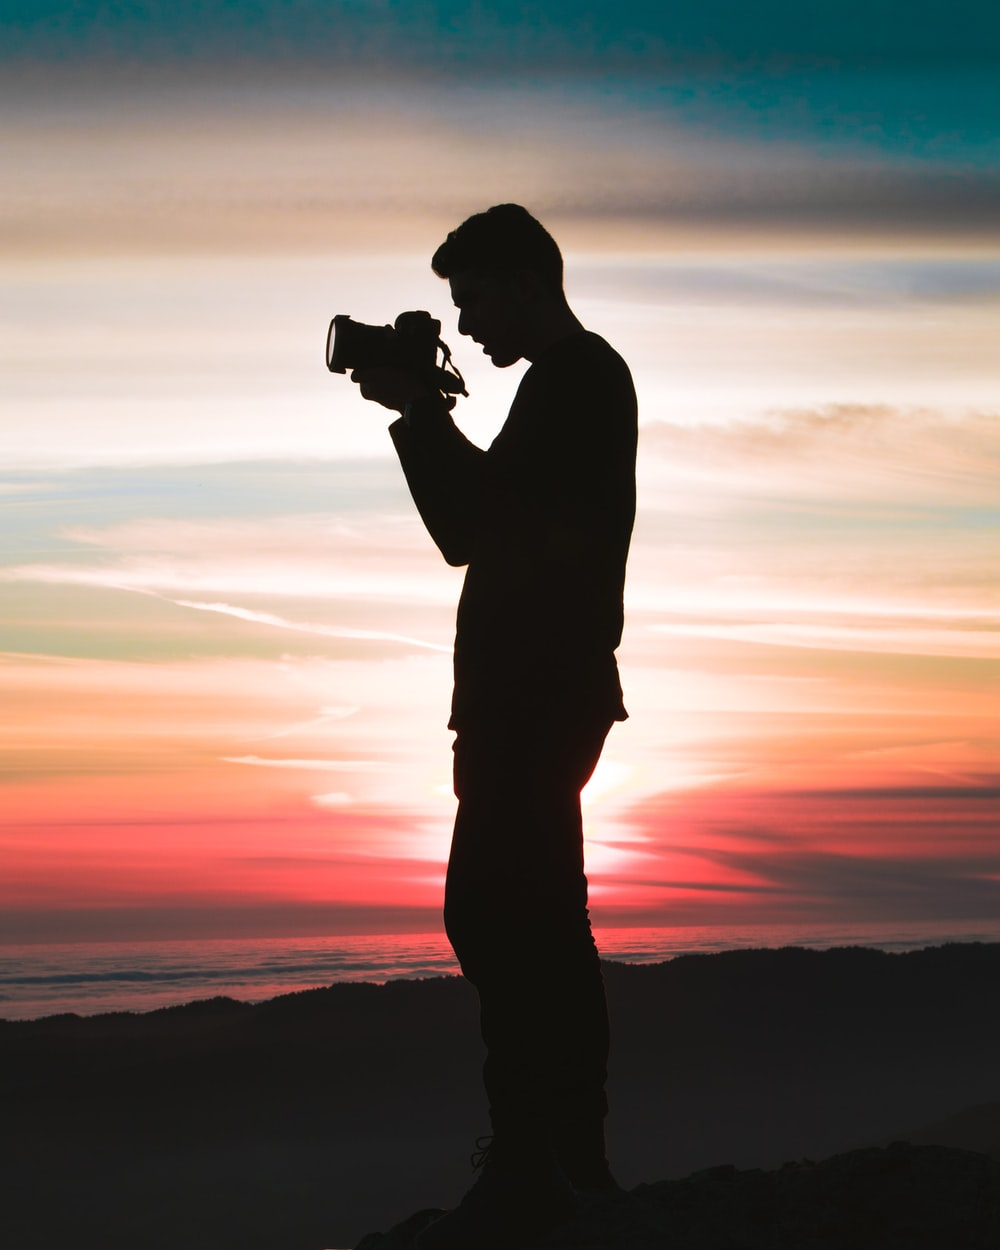 Best 500 Profile Pictures Hd Download Free High Def Images On Unsplash